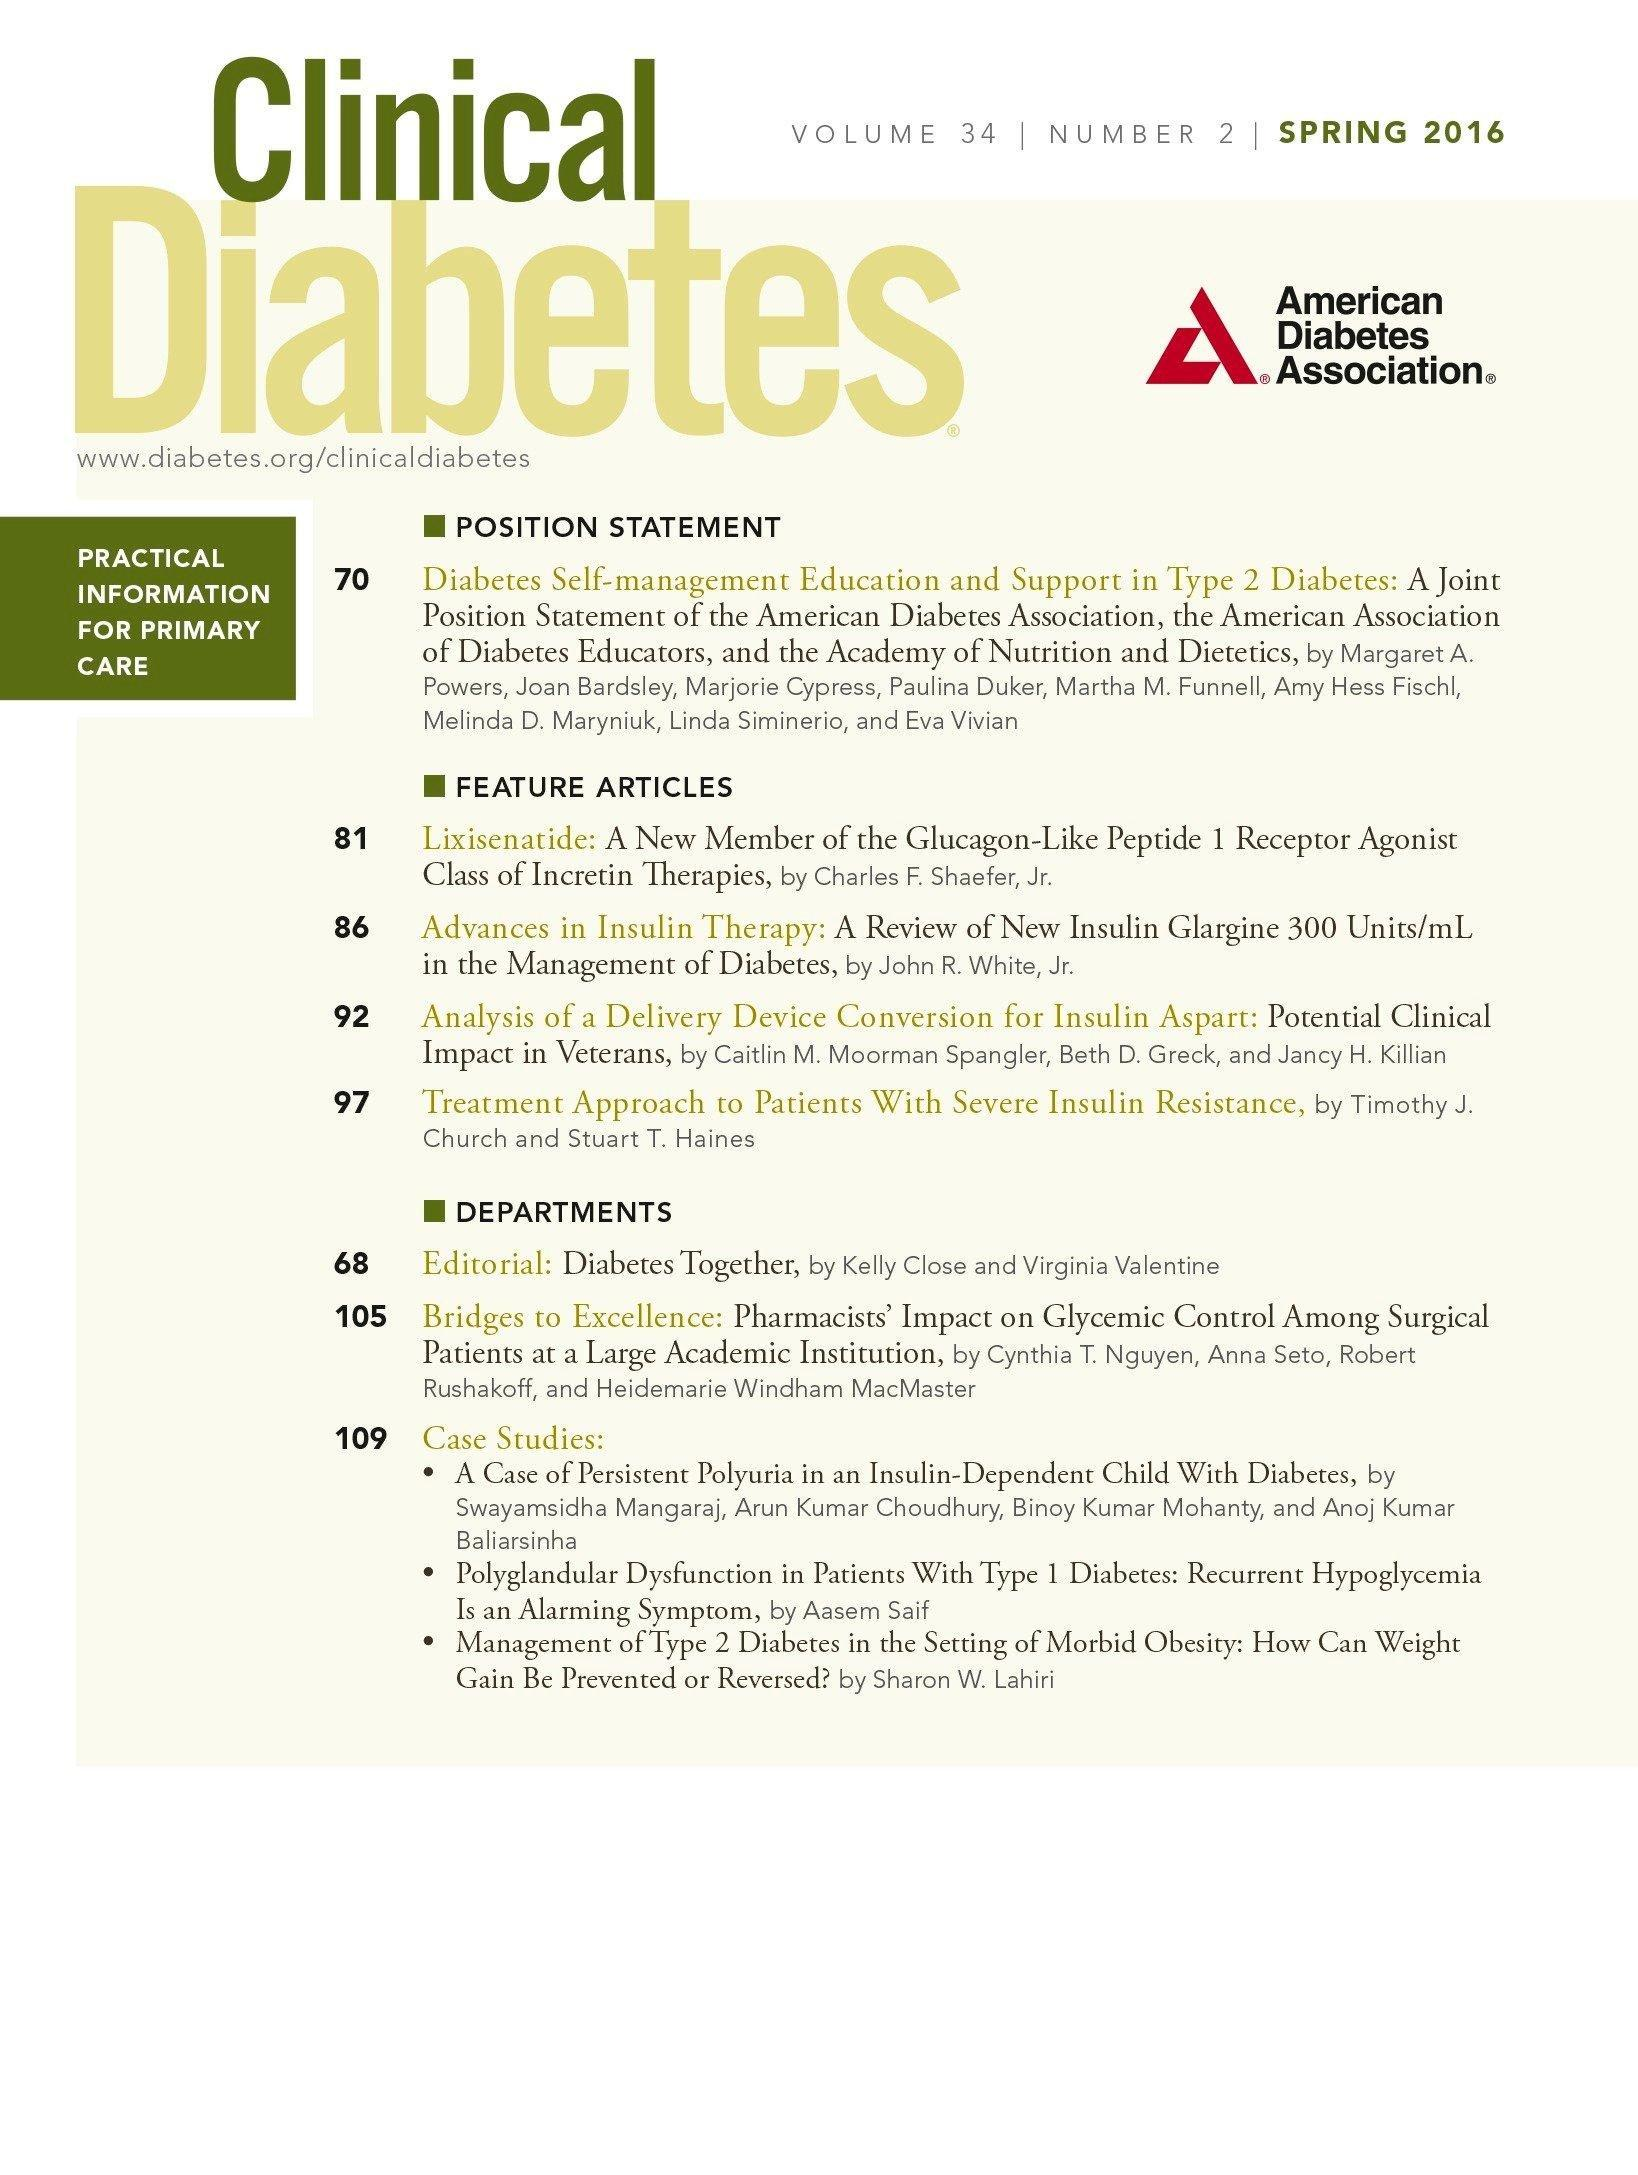 Treatment Approach To Patients With Severe Insulin Resistance